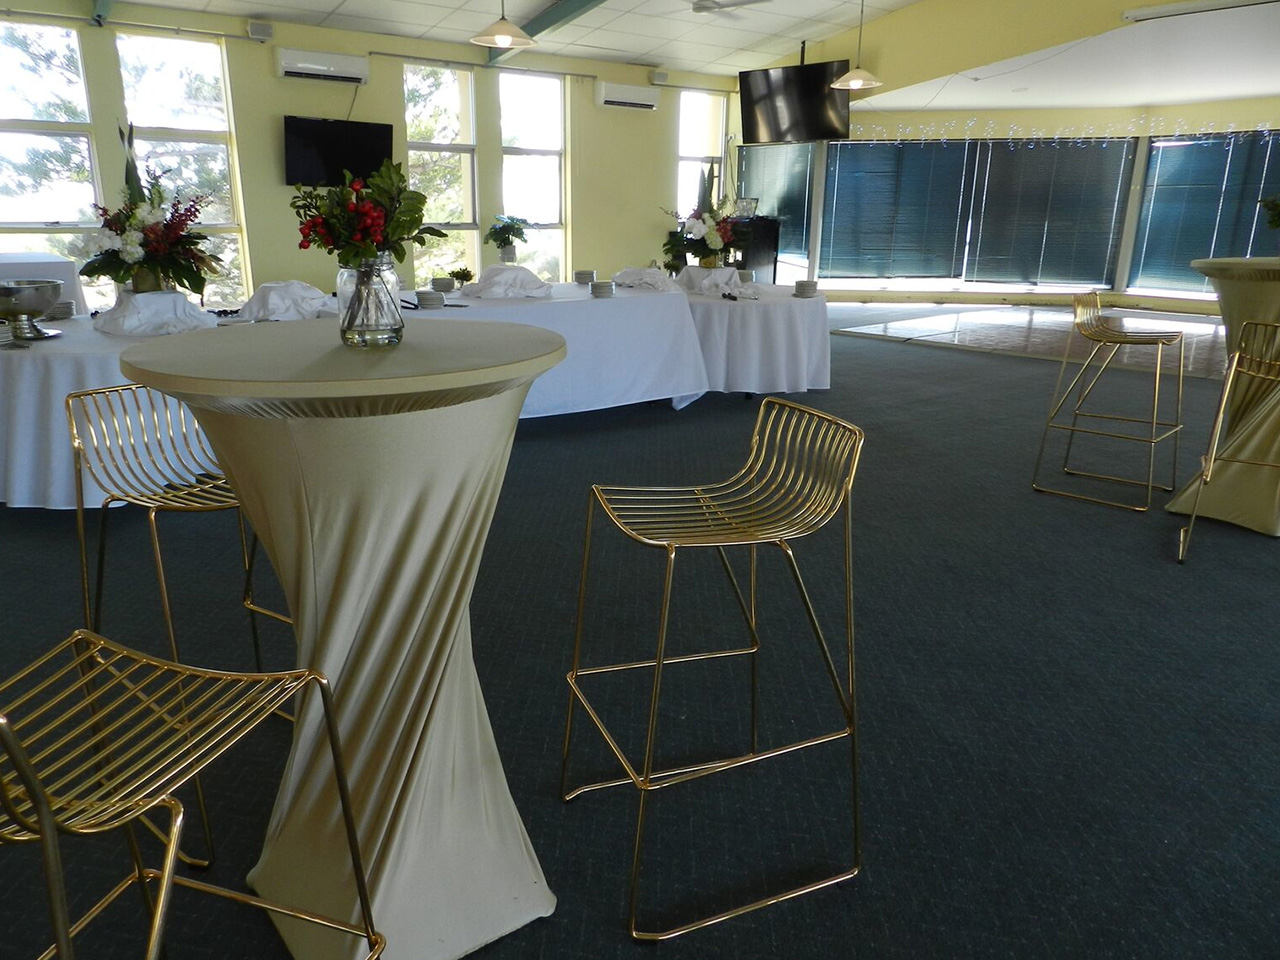 Cocktail Tables With High Chairs And A White Long Table Behind Inside The Function Room